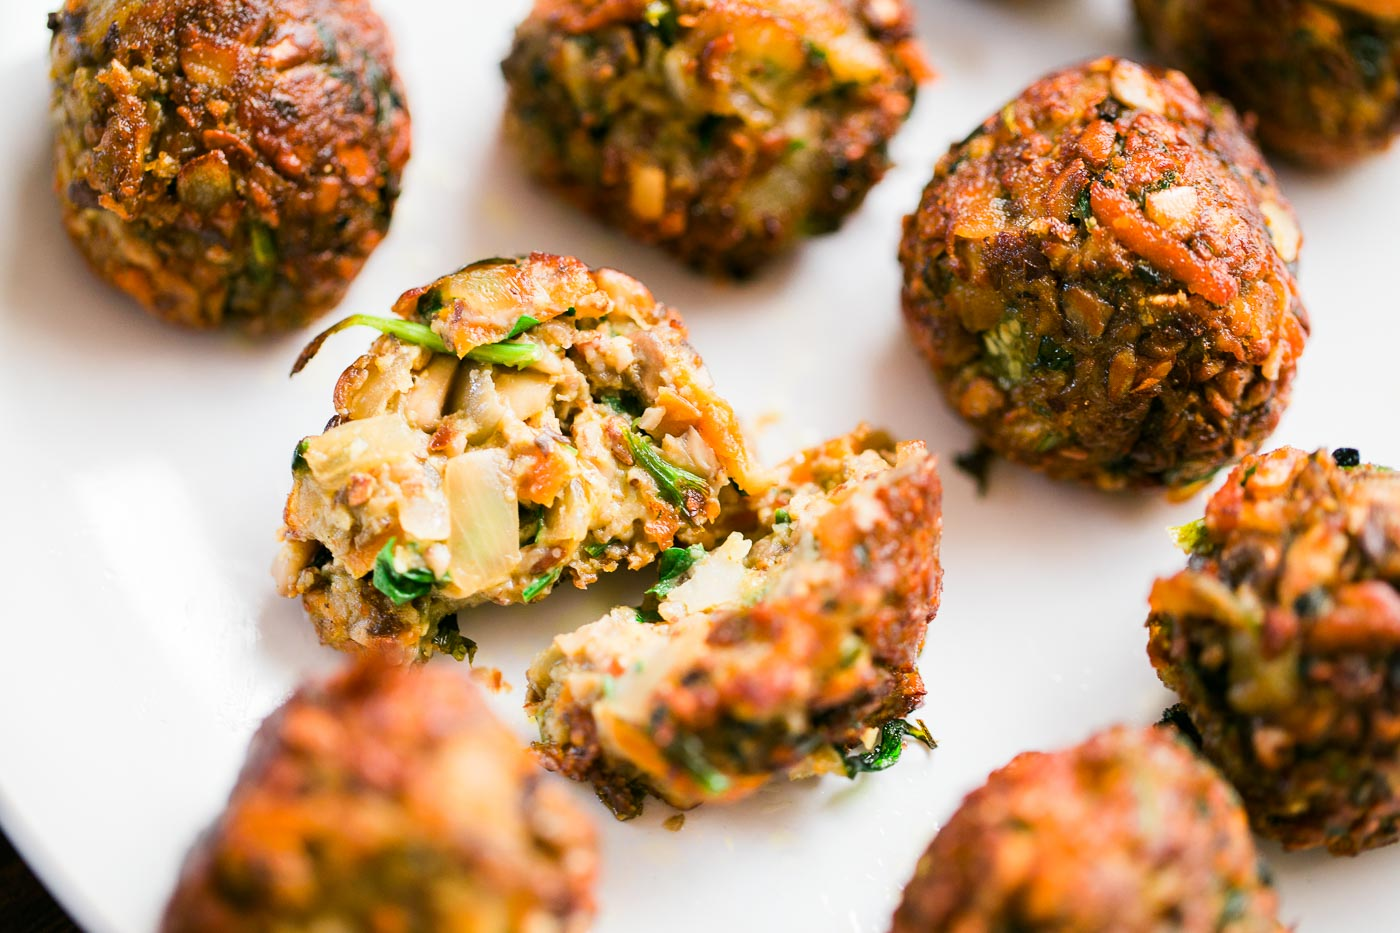 How to make vegan meatballs - delish and meat-free! Click for easy recipe.